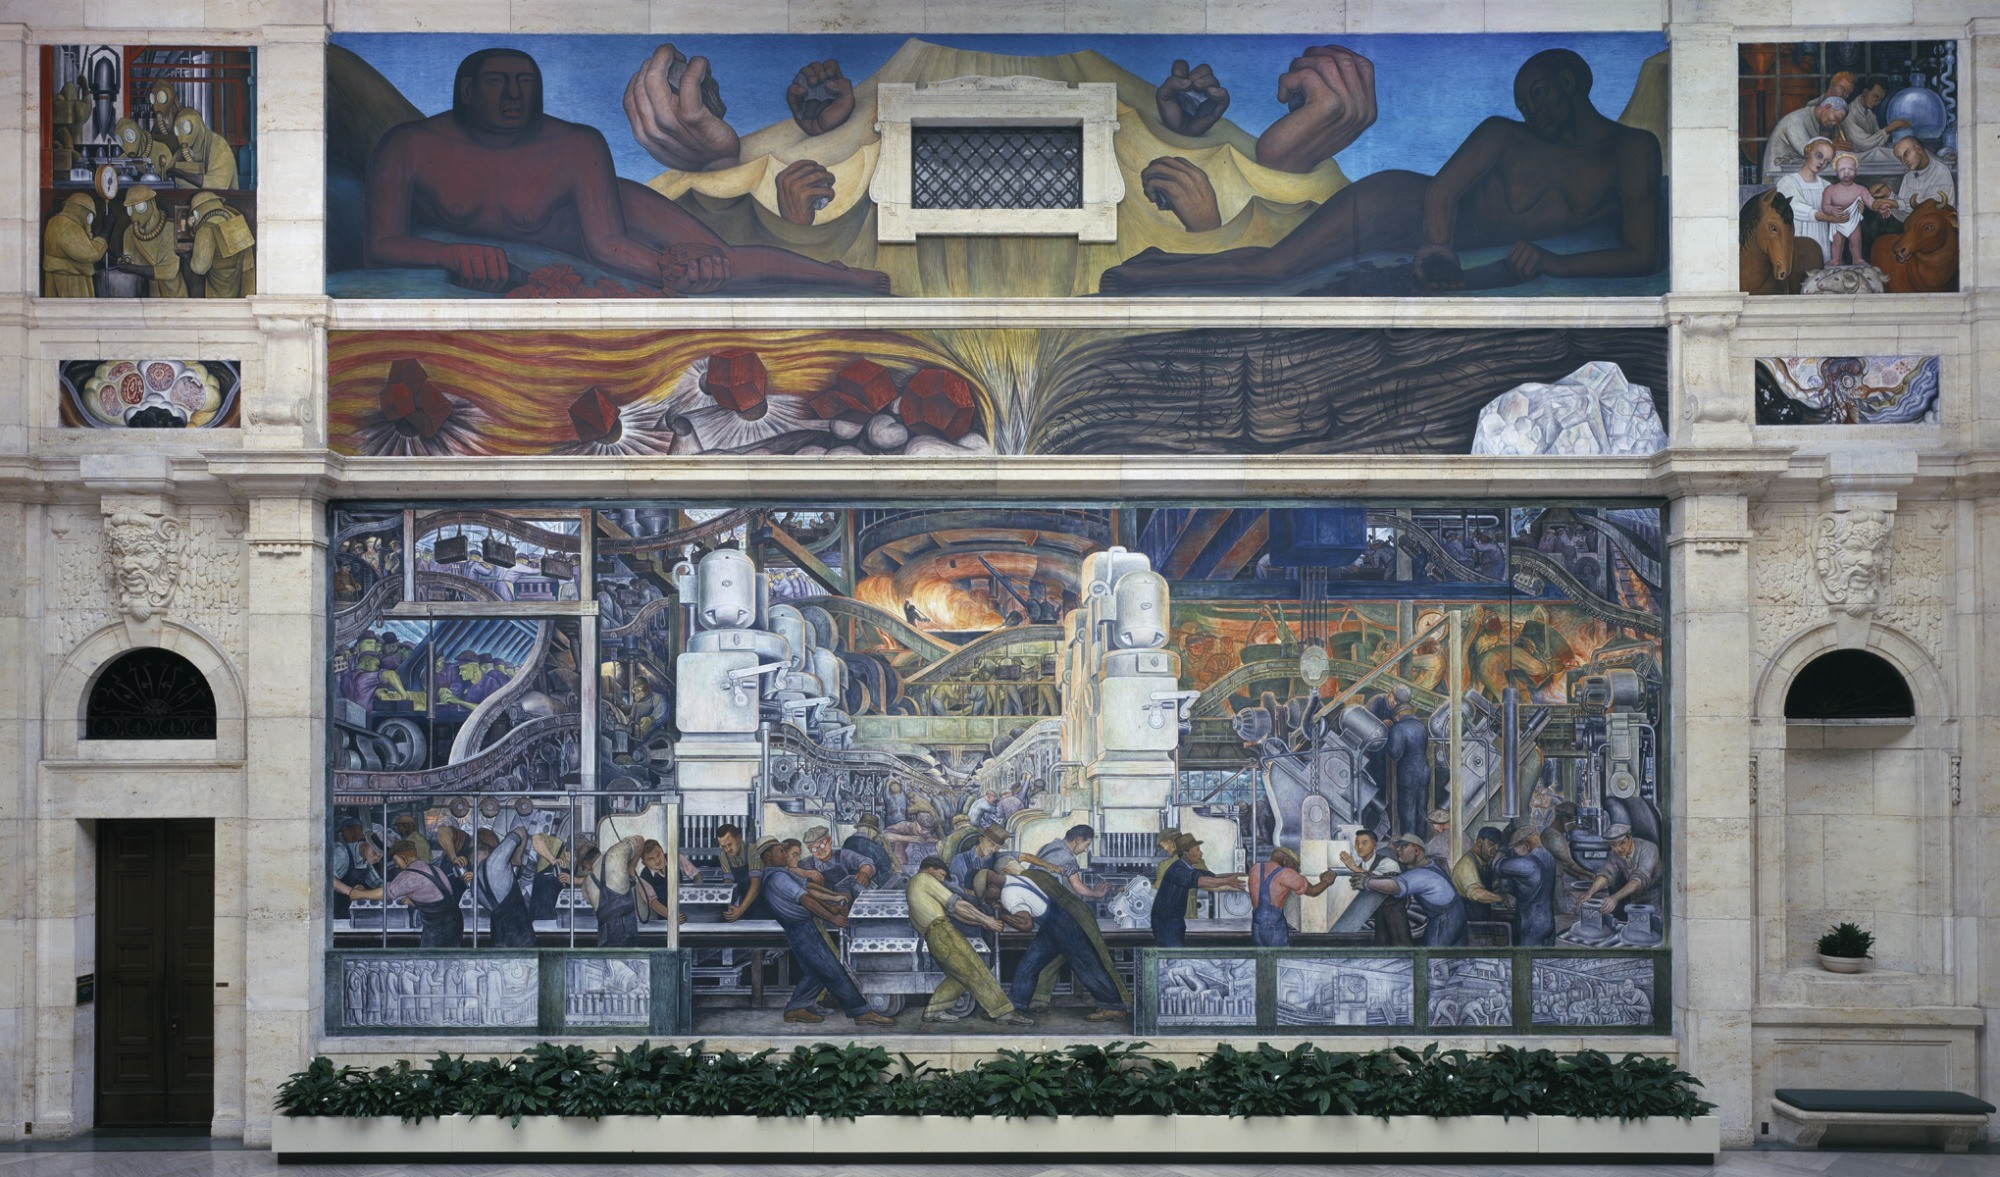 Res: 2000x1177, Diego M. Rivera, Detroit Industry, North Wall, 1932-1933, fresco